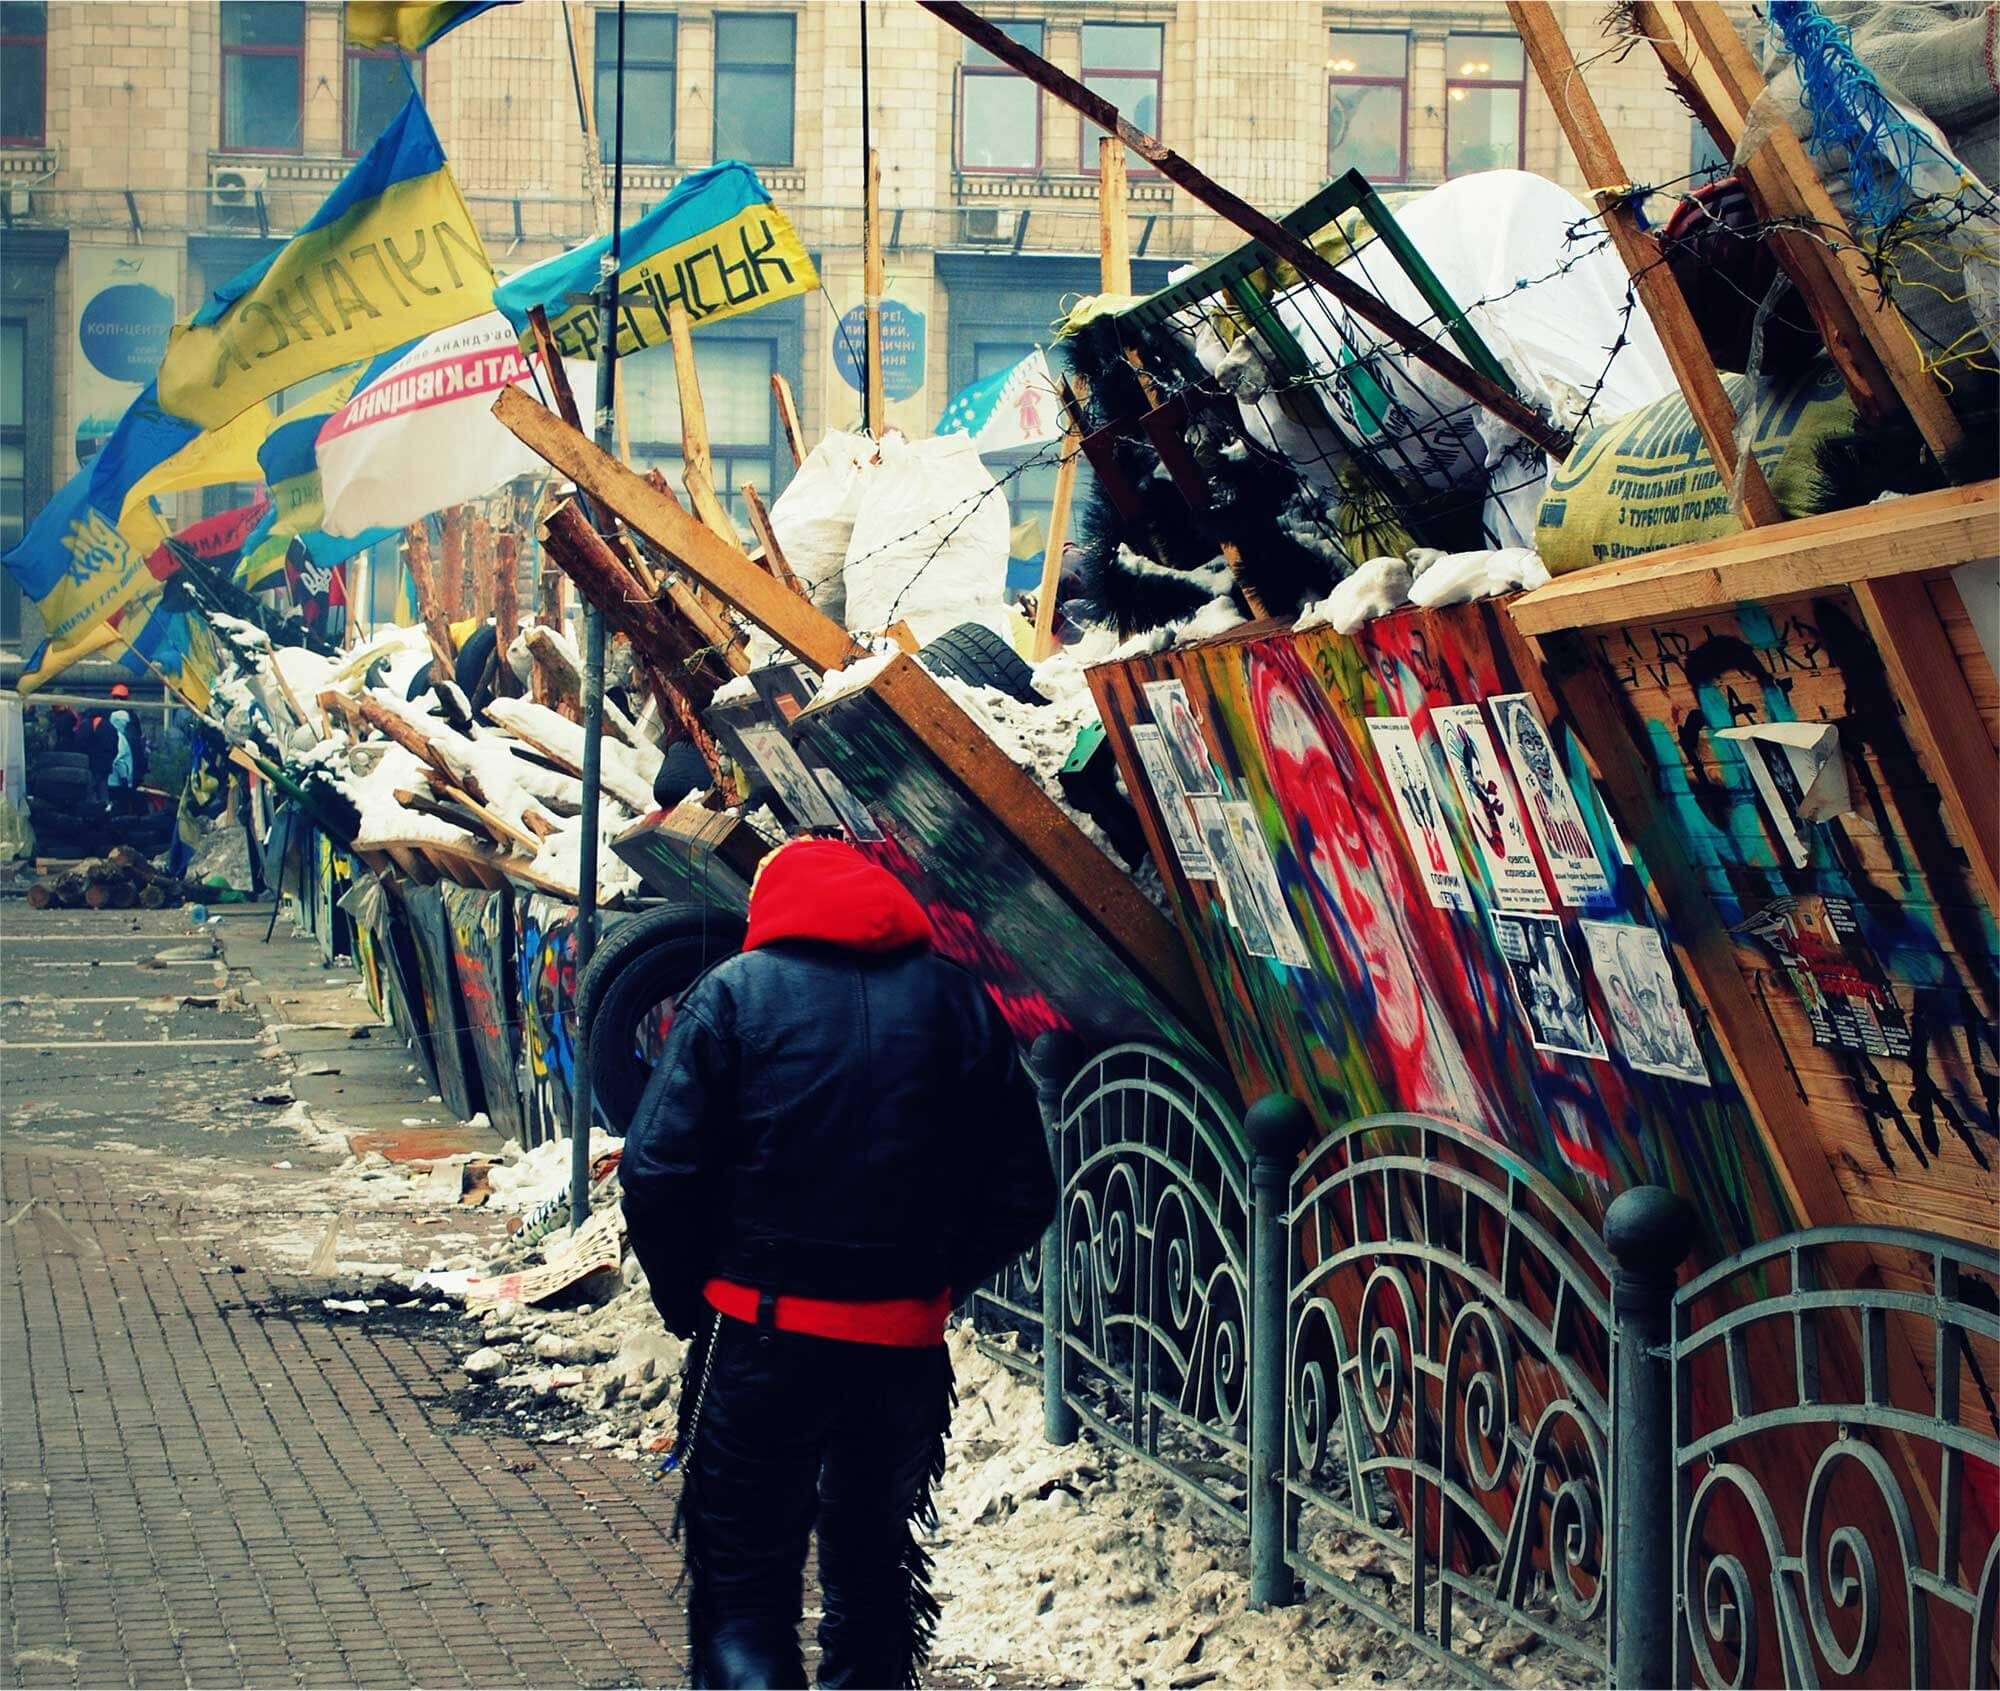 Kiev Occupation Zone II